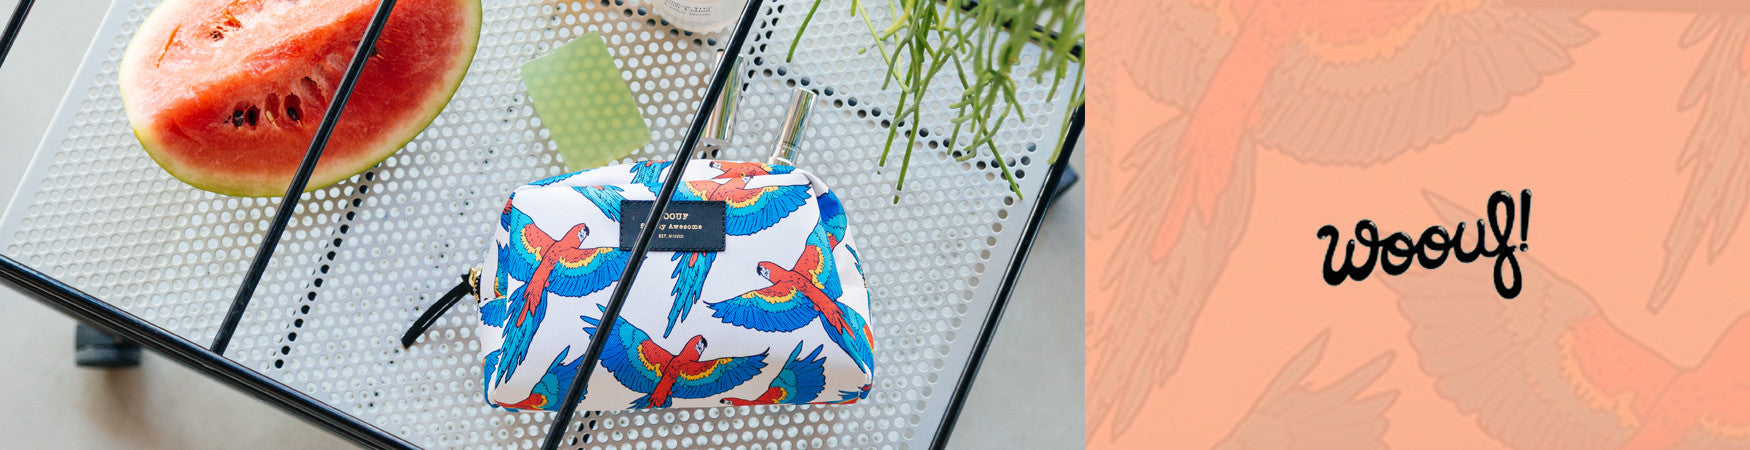 Shop the Woouf! Make-Up bag with a colourful Macaw print from Ro's Beach UK